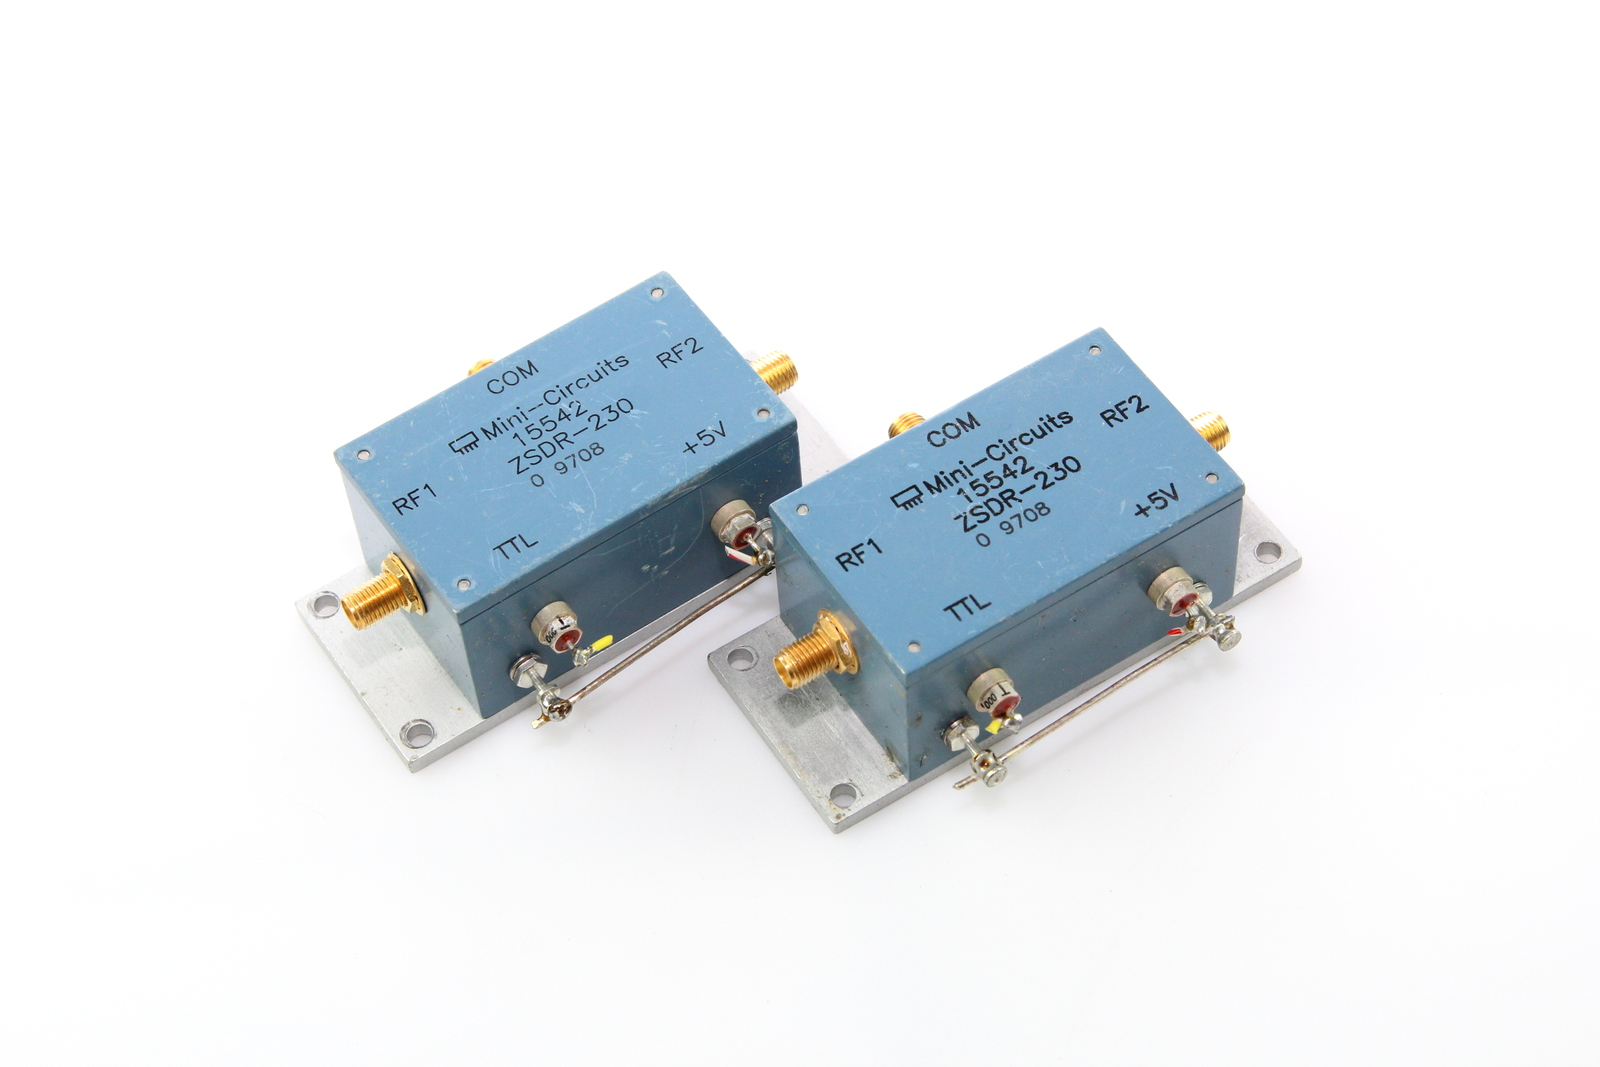 Details about Mini Circuits ZSDR-230 SPDT Pin Diode Coaxial RF Switch Wide  Range 10-3000MHz